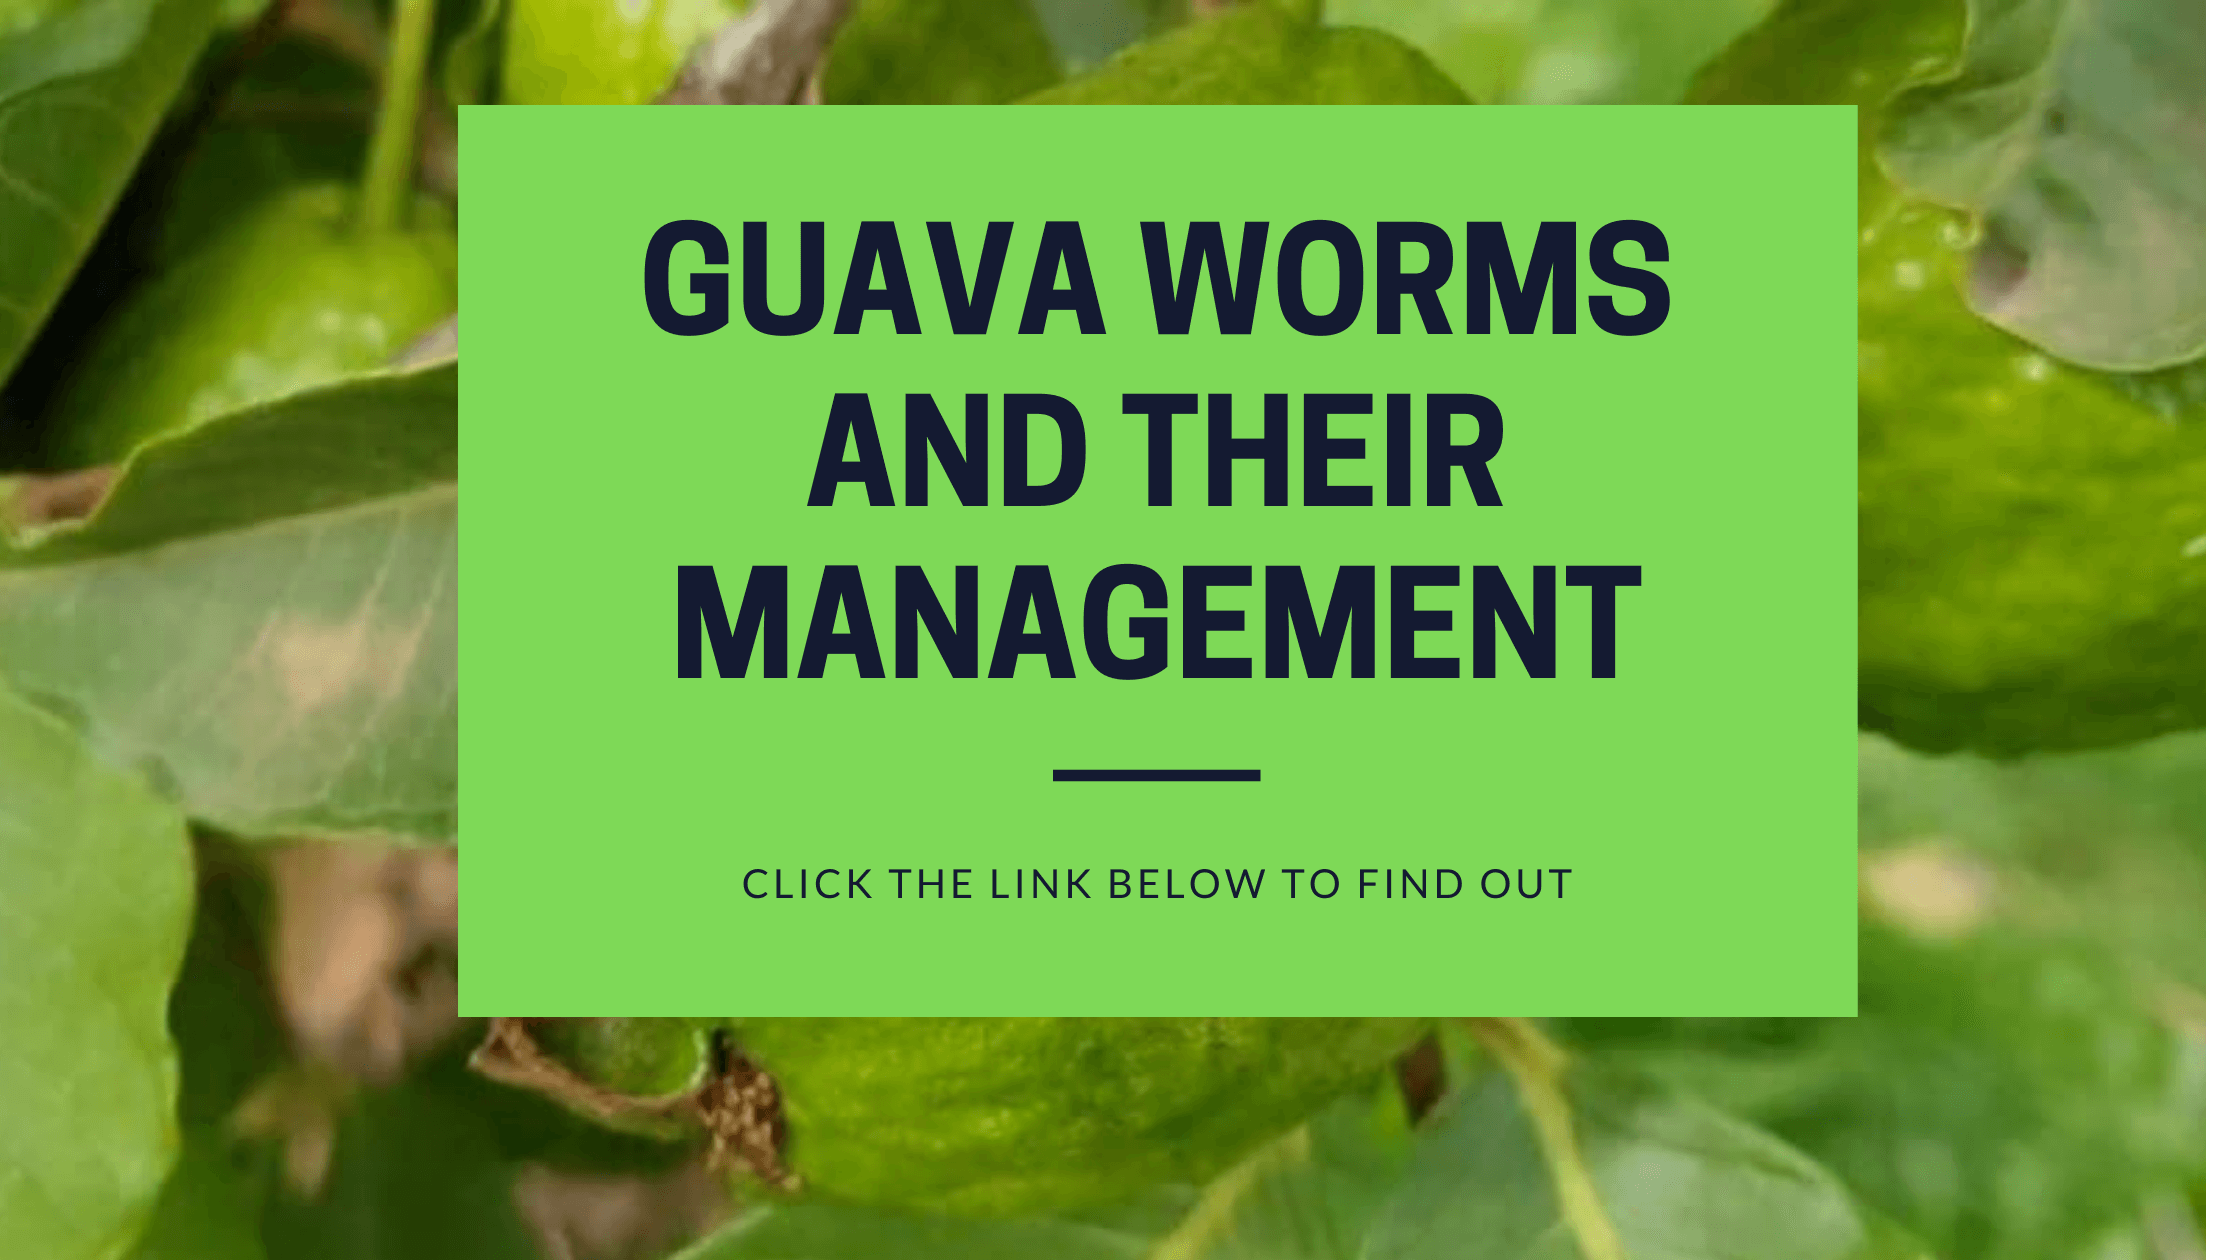 guava worms and their management